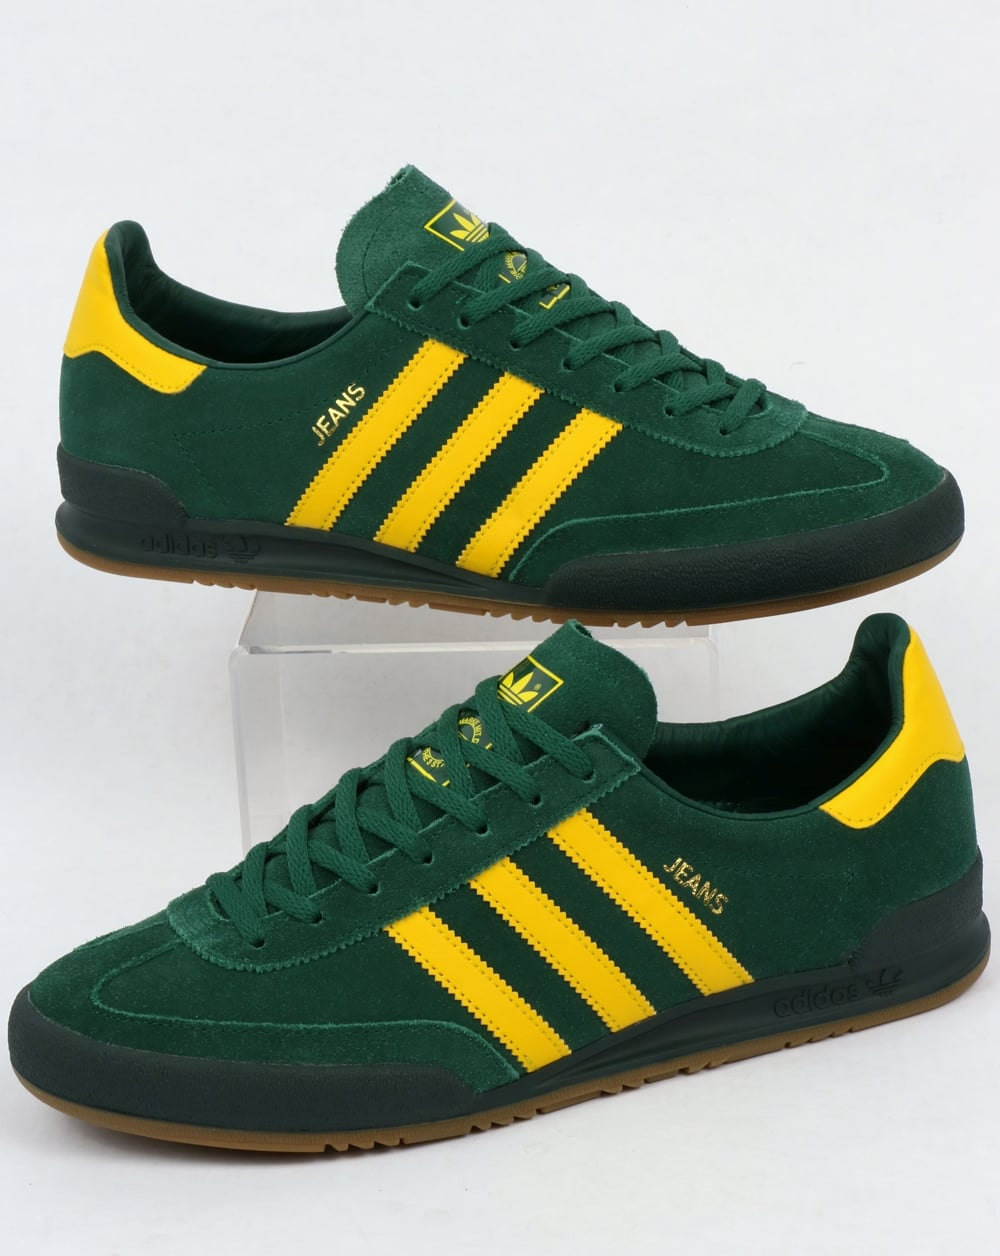 Adidas Jeans Trainers Mk2 Green Yellow c7bec444d